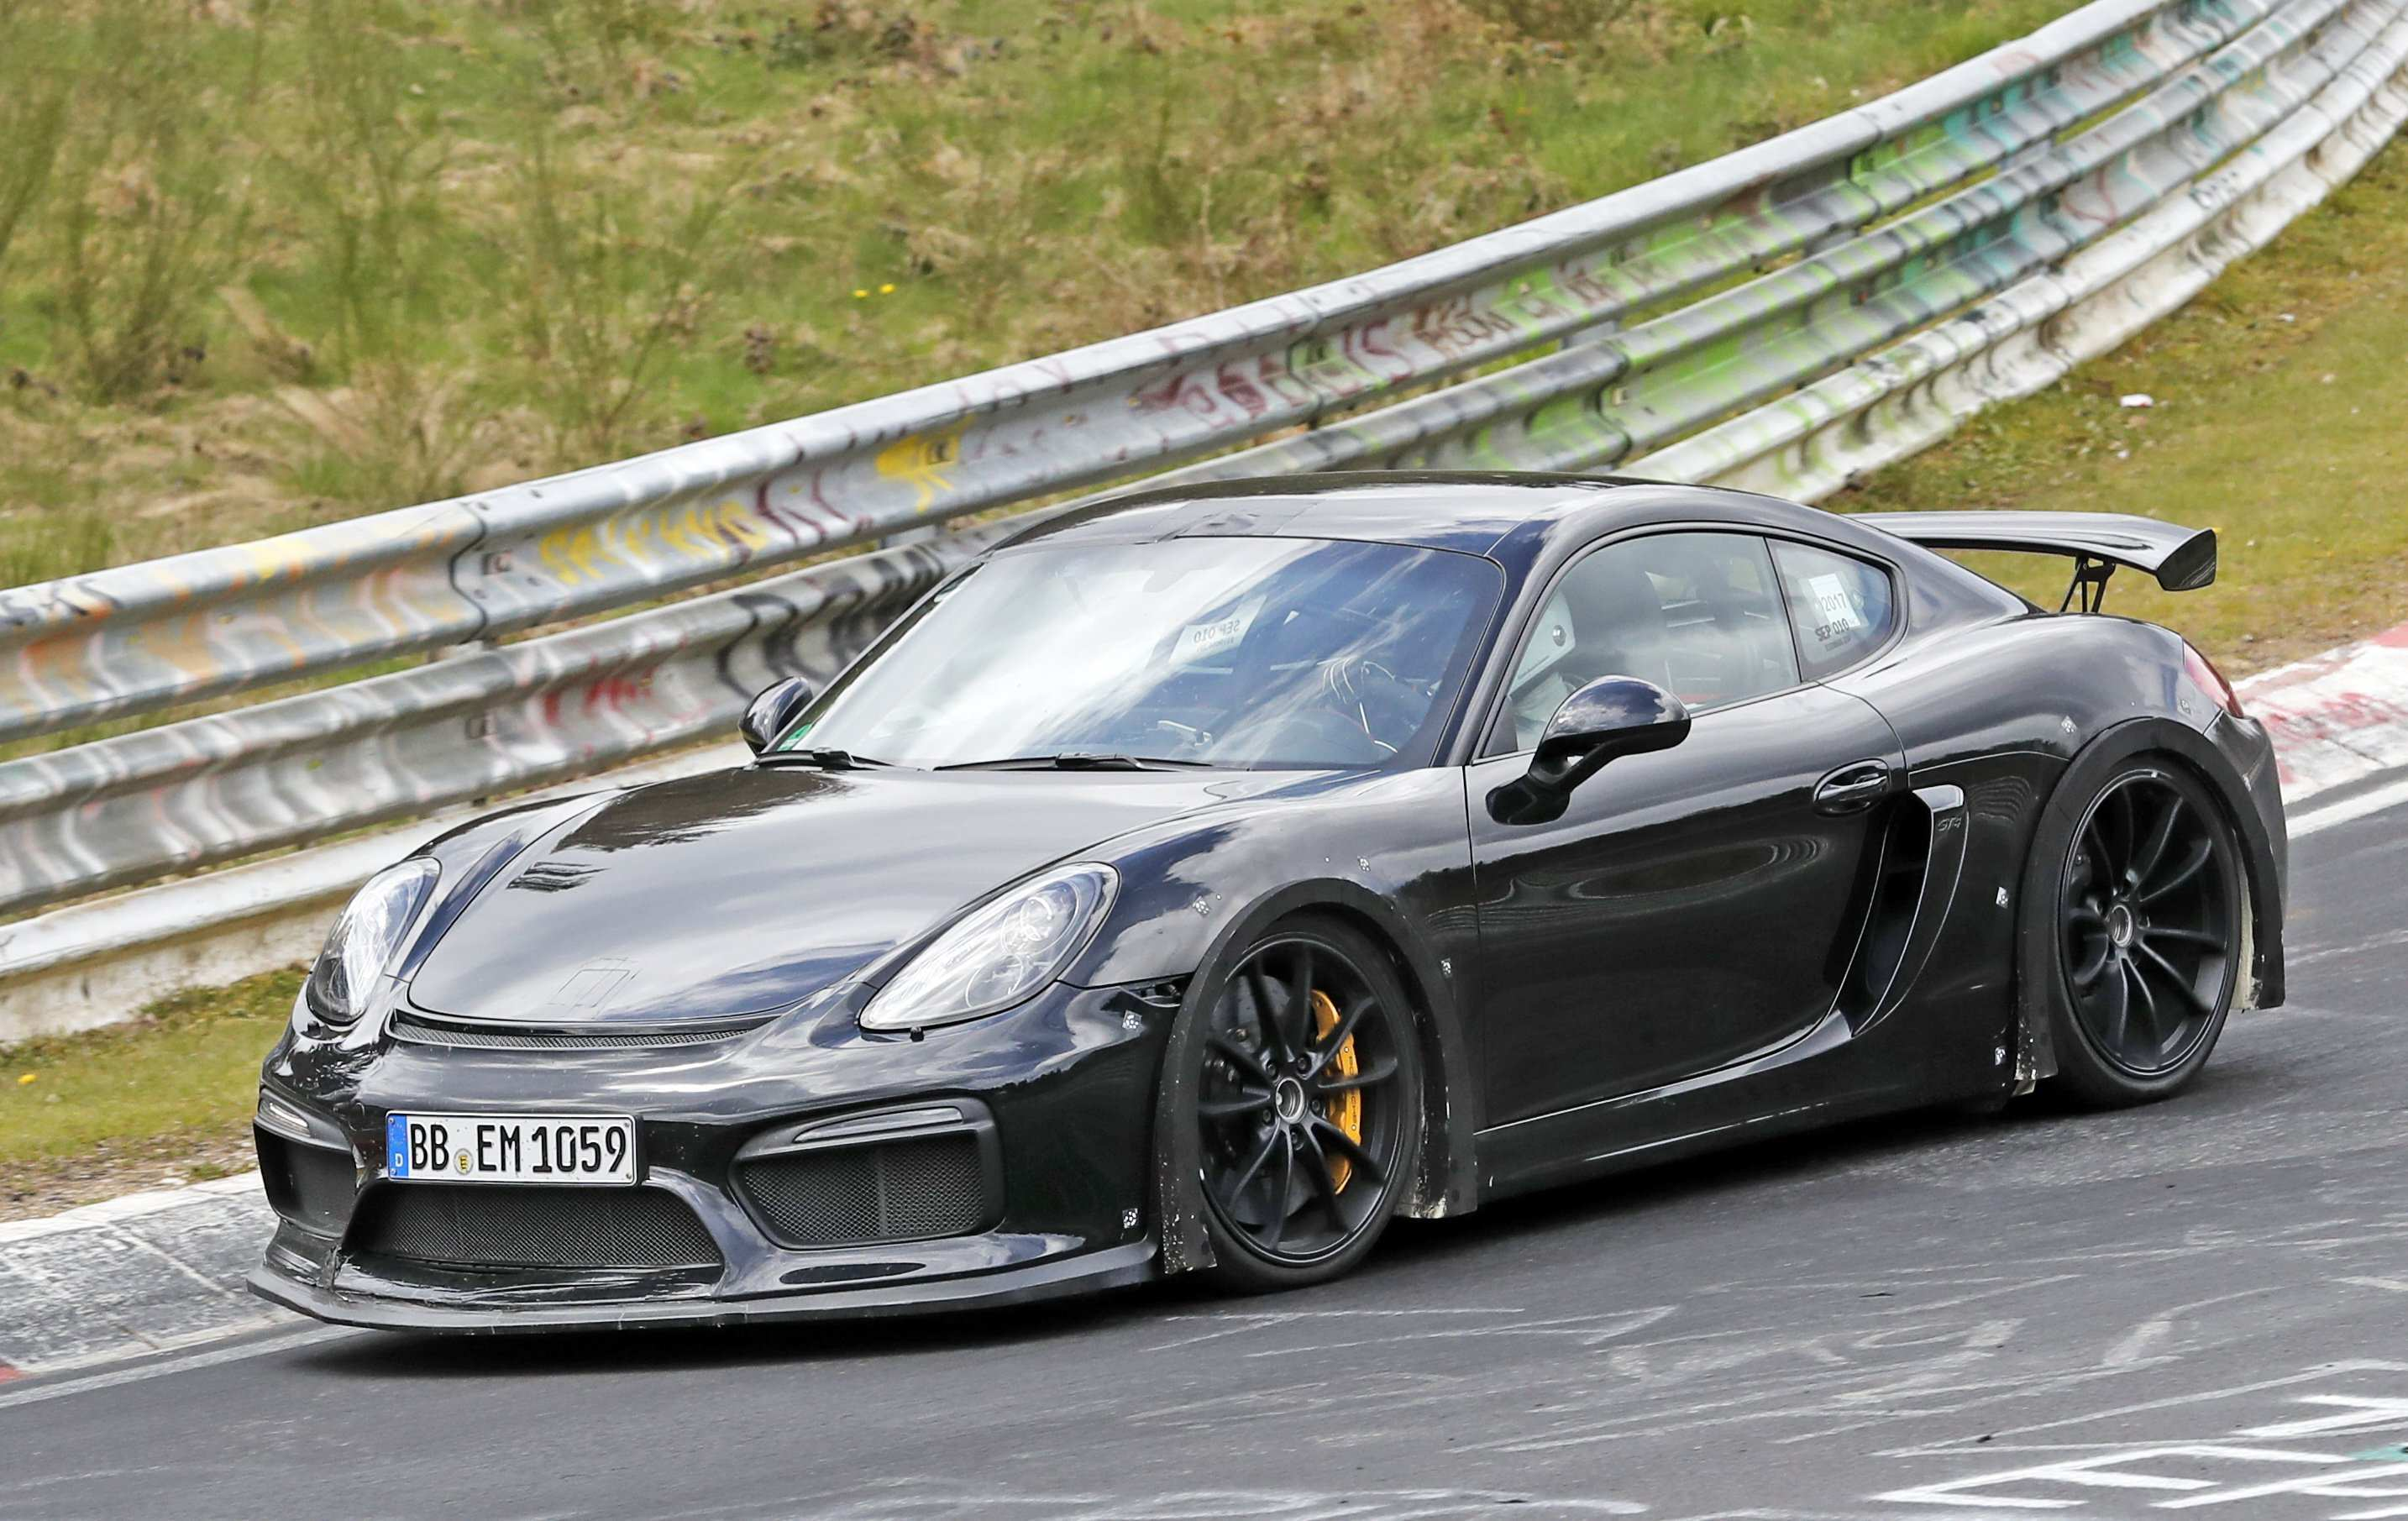 61 Great 2020 Porsche Gt4 Pictures for 2020 Porsche Gt4